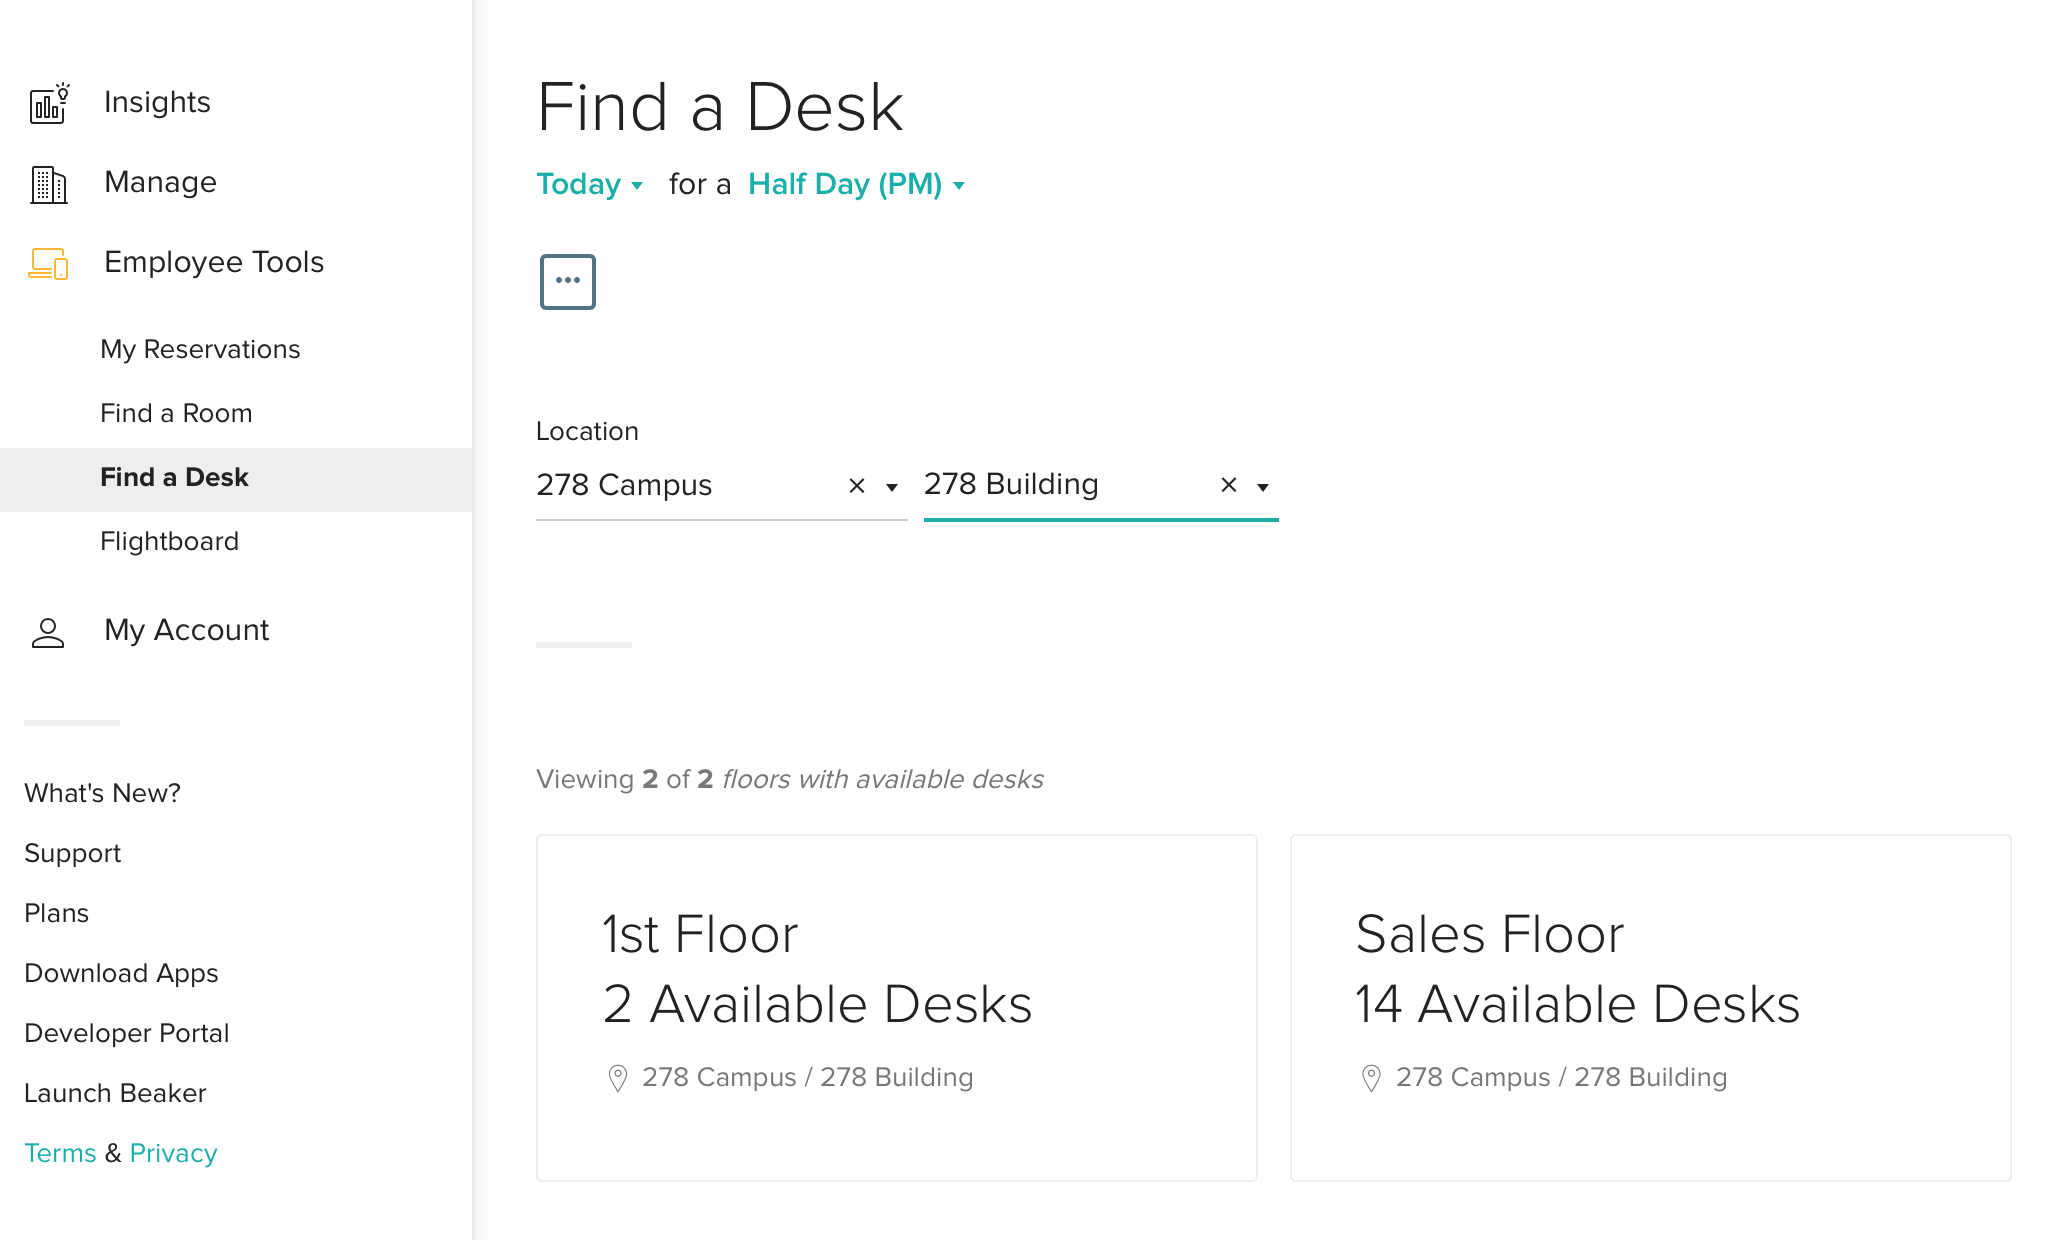 Find a Desk Options Page